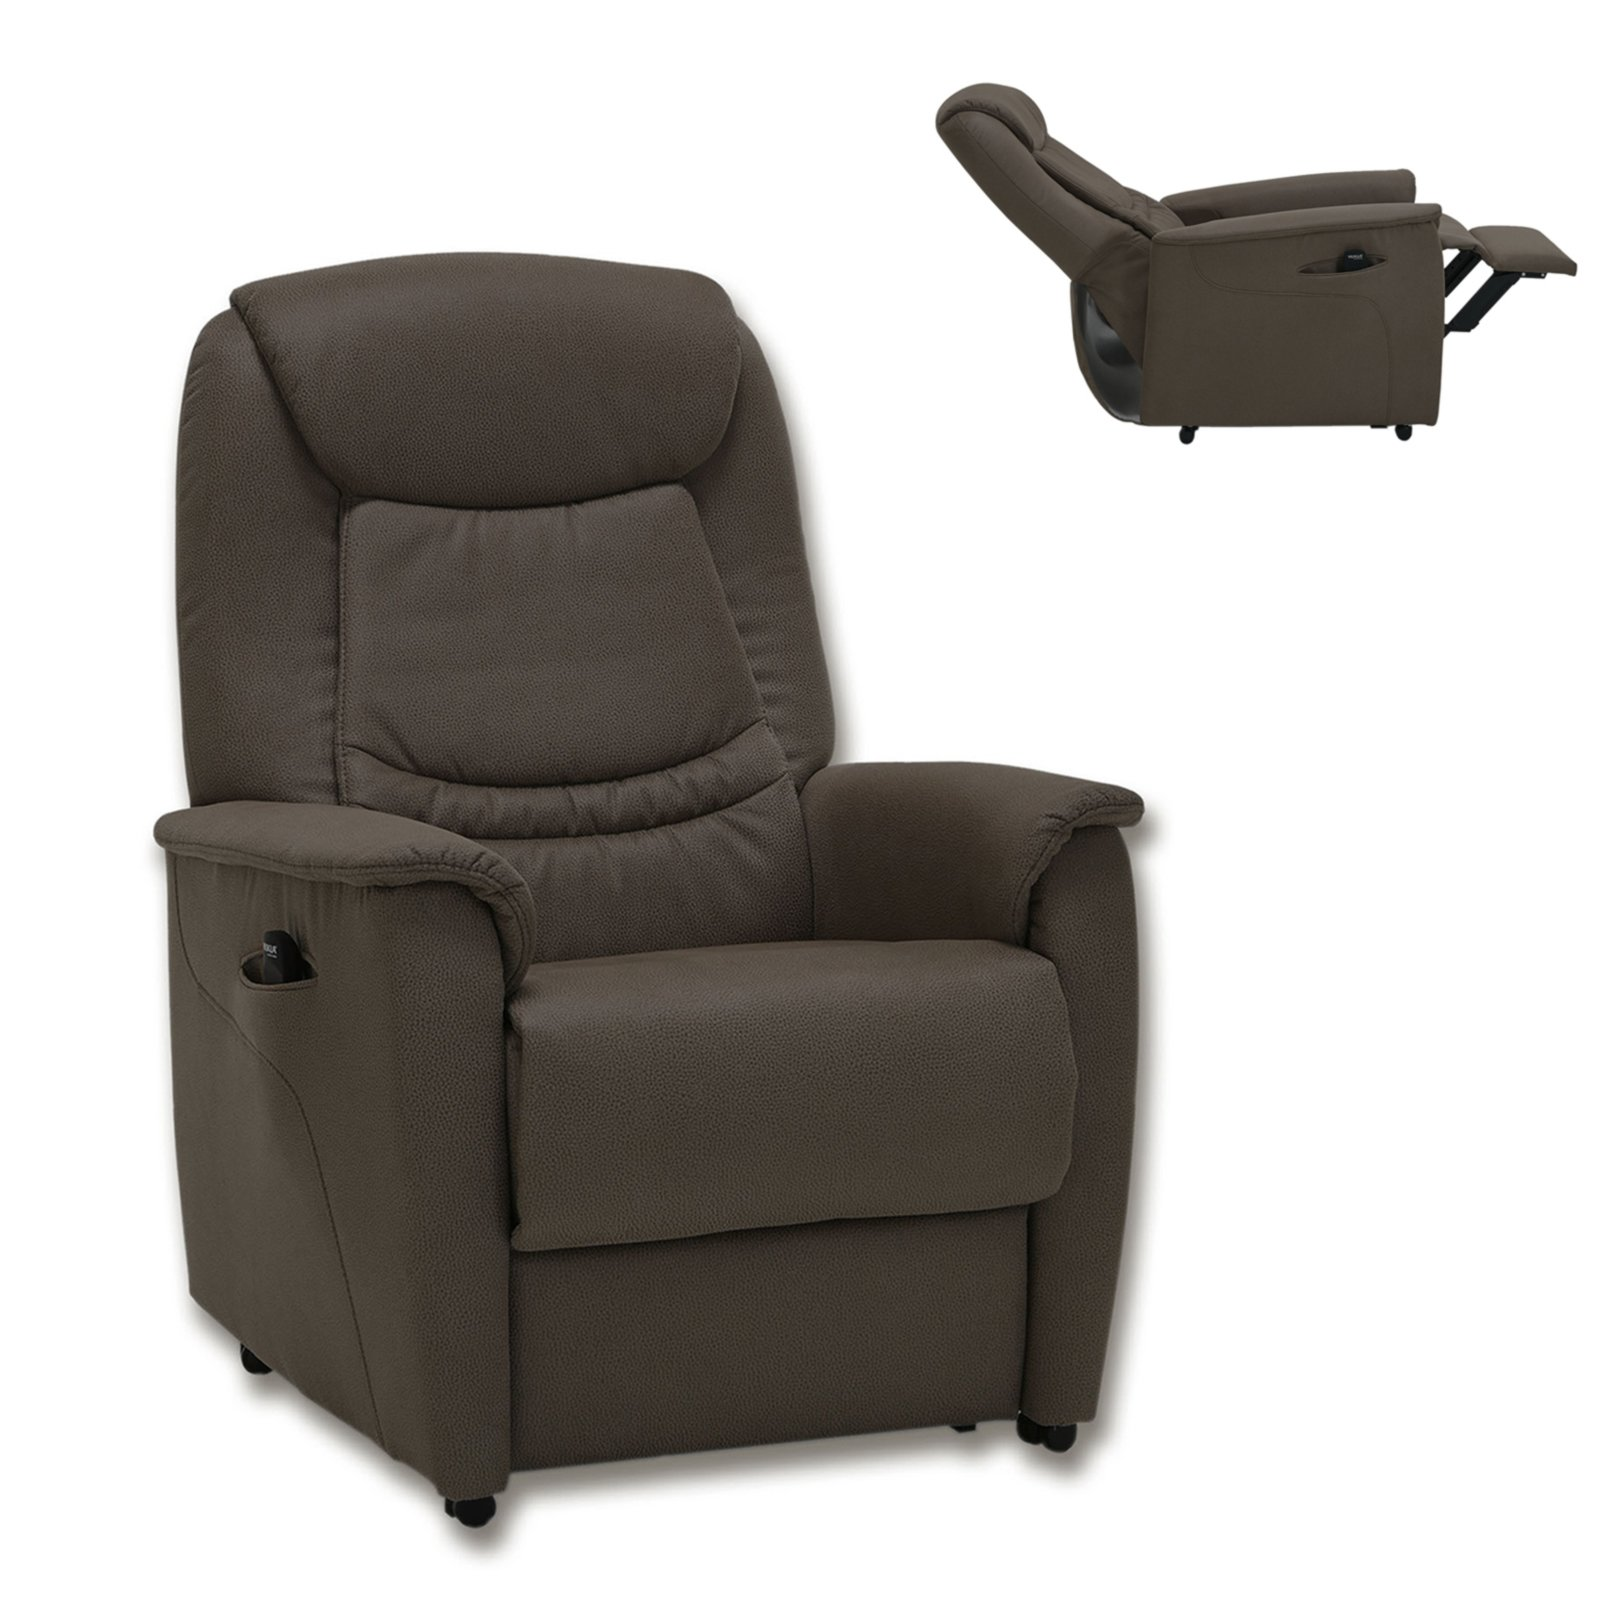 Tv Sessel Braun Mit Motor Fernseh Relaxsessel - Roller Relaxsessel